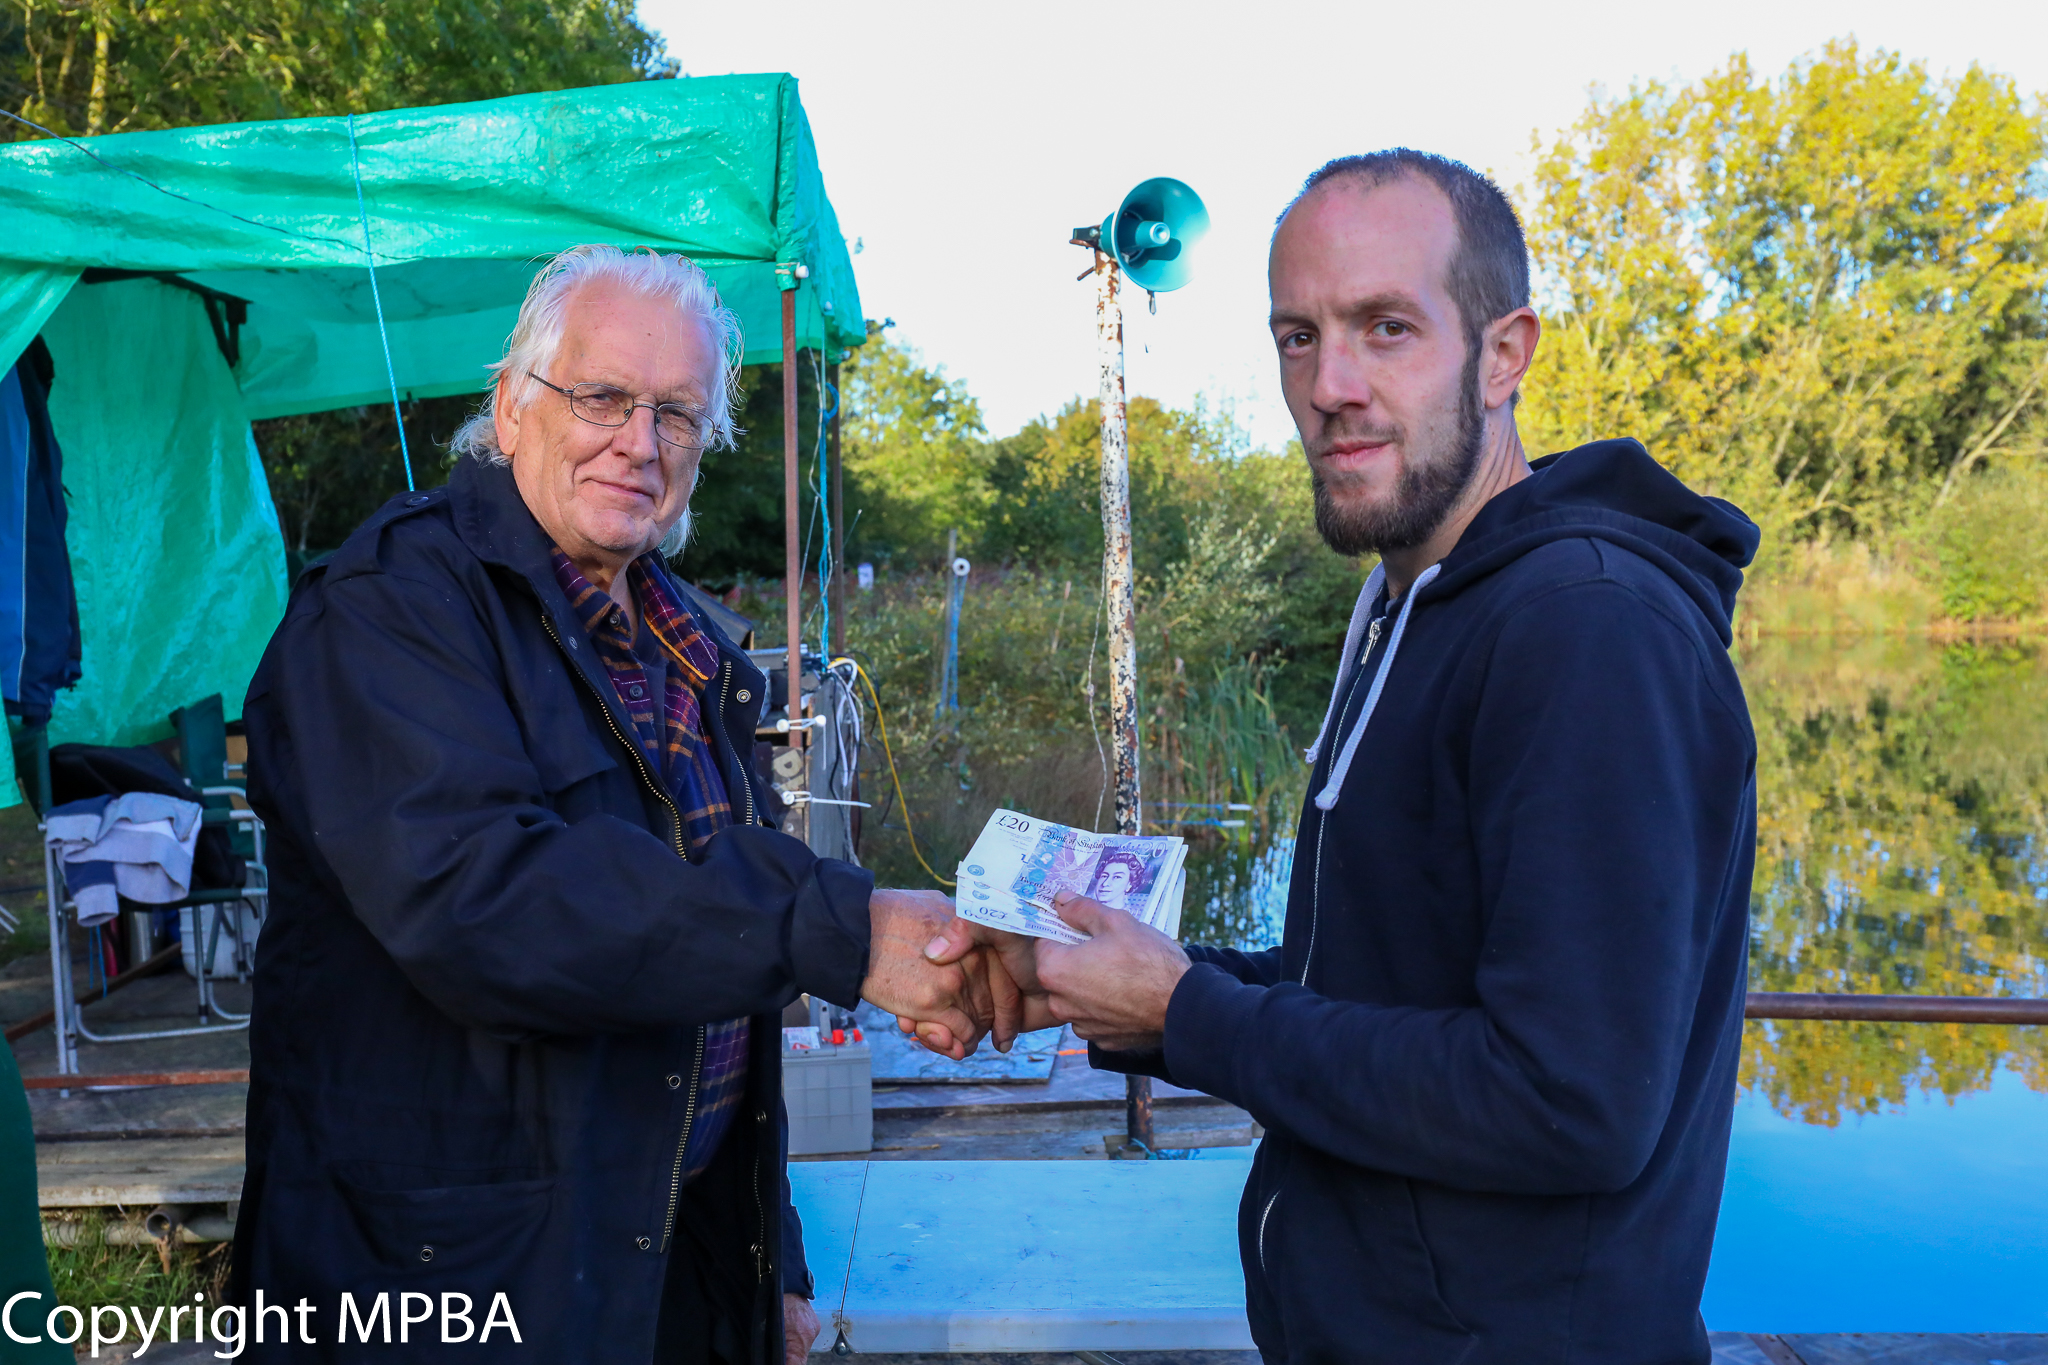 James collects his cash from Dave Marles